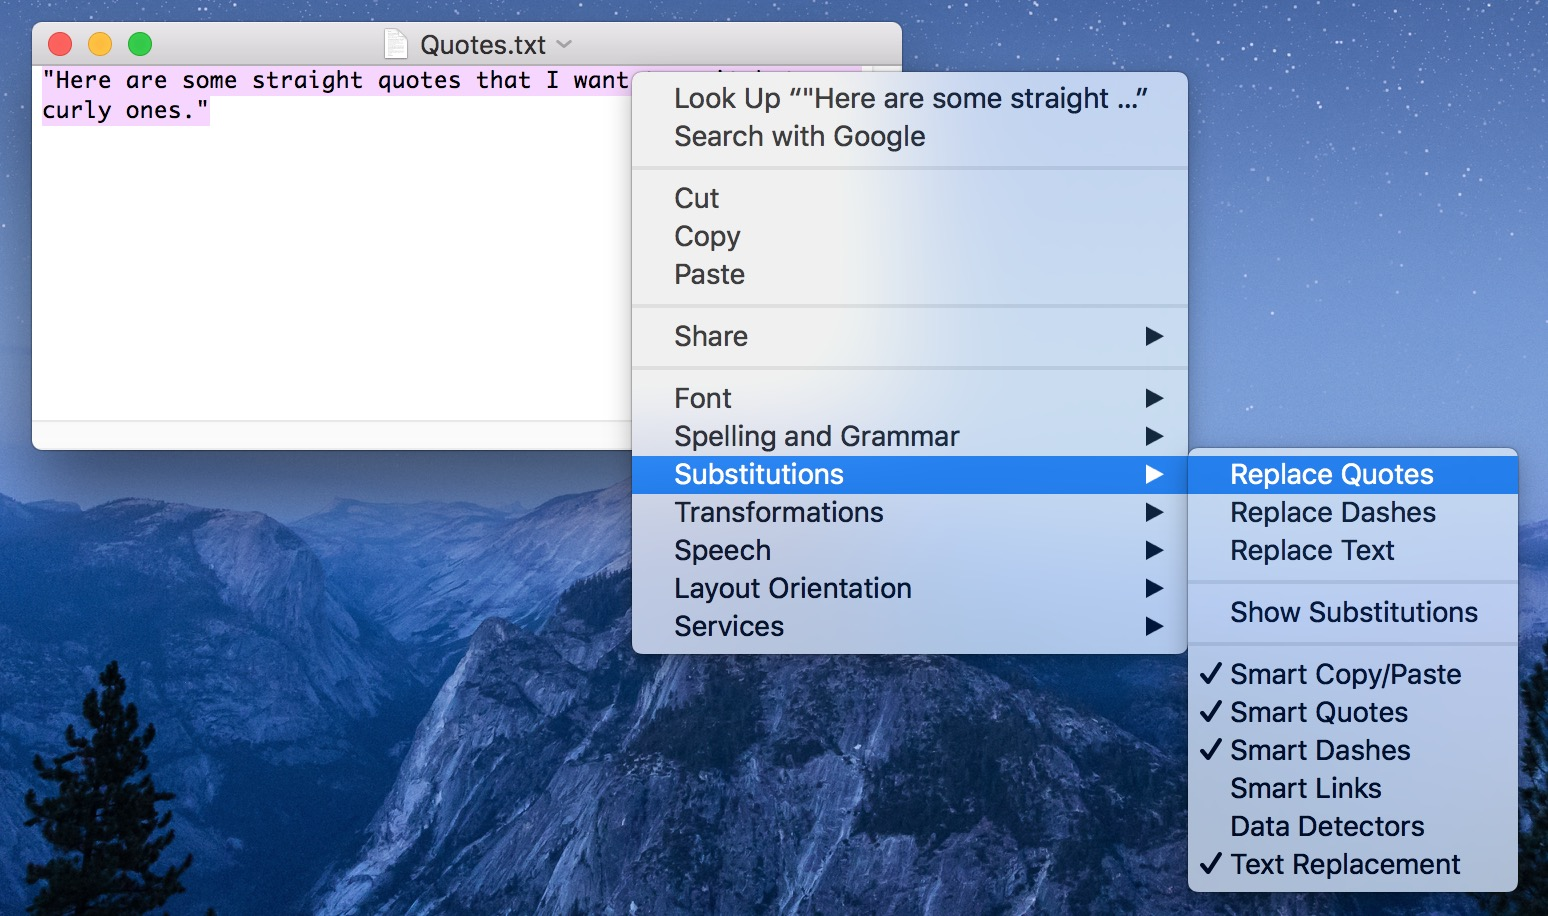 The Substitutions menu option in TextEdit includes a Replace Quotes feature